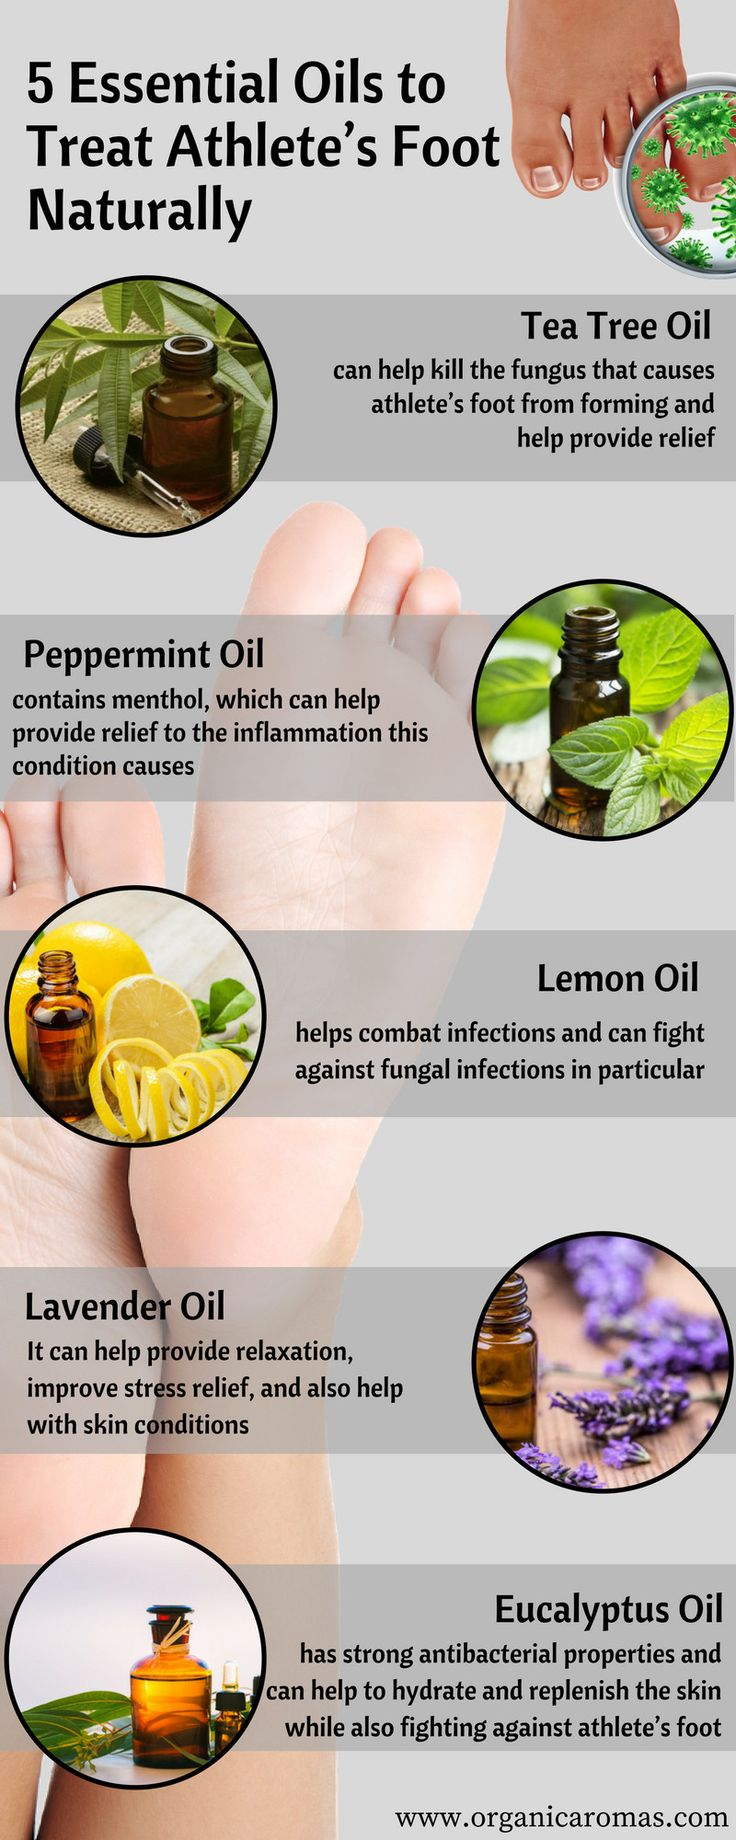 5 Essential Oils to Treat Athlete's Foot Naturally - Organic Aromas